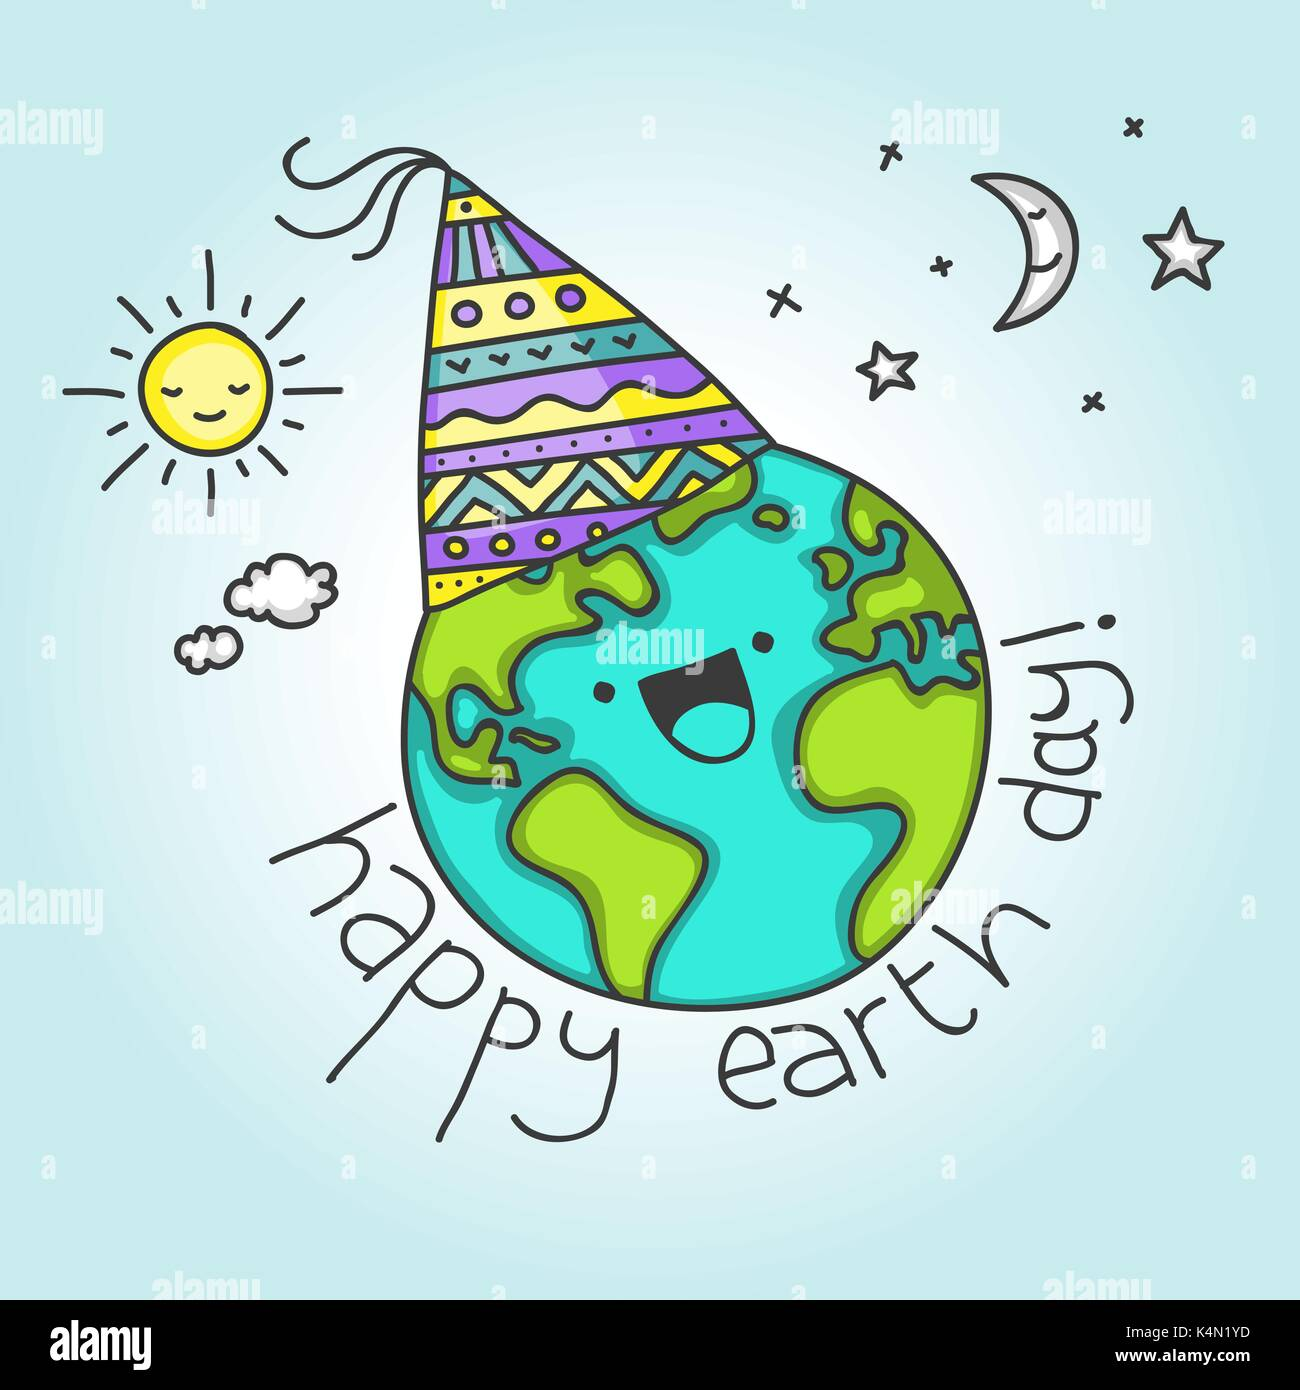 Cute card for April 22 with cartoon Earth saying Happy Earth Day - Stock Image